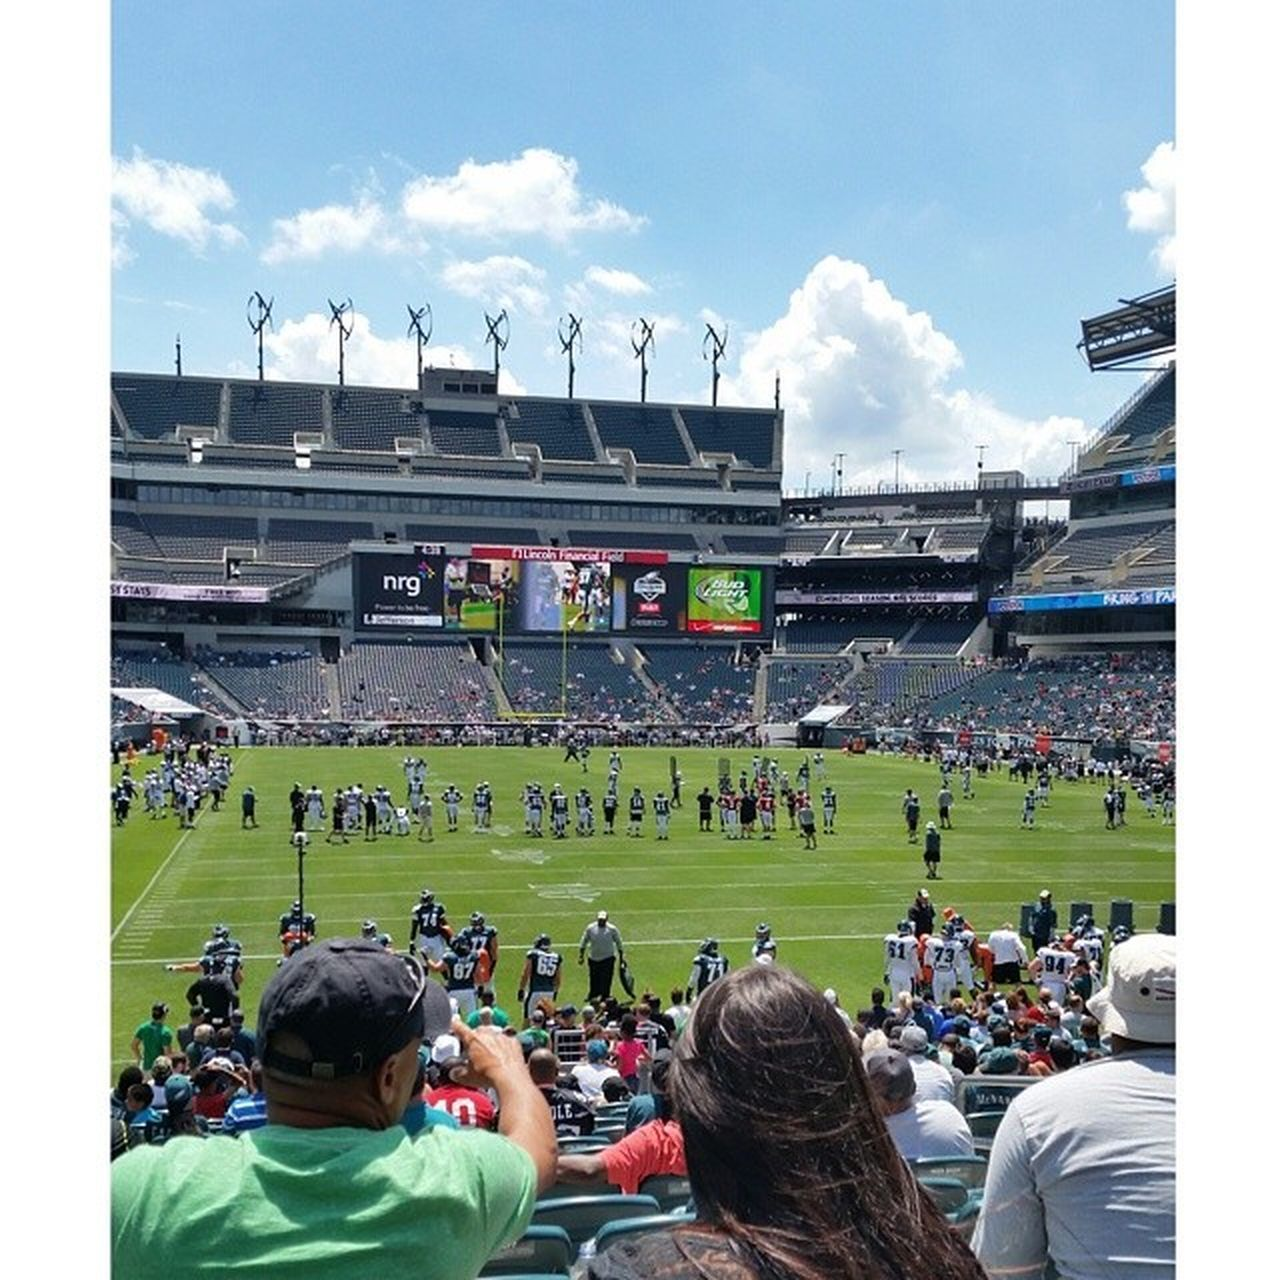 The Linc! Eagles Philly Football NFL NFL Football NFL Experience Trainingcamp 2014 Stadium Swarm EyeEm Best Shots Popular Photos Androidography Chilladelphia Getty X EyeEm Photography Photographer Eye Em Best Shots Scenic Philadelphia Philadelphia Eagles Visitphilly Visit Philly First Eyeem Photo